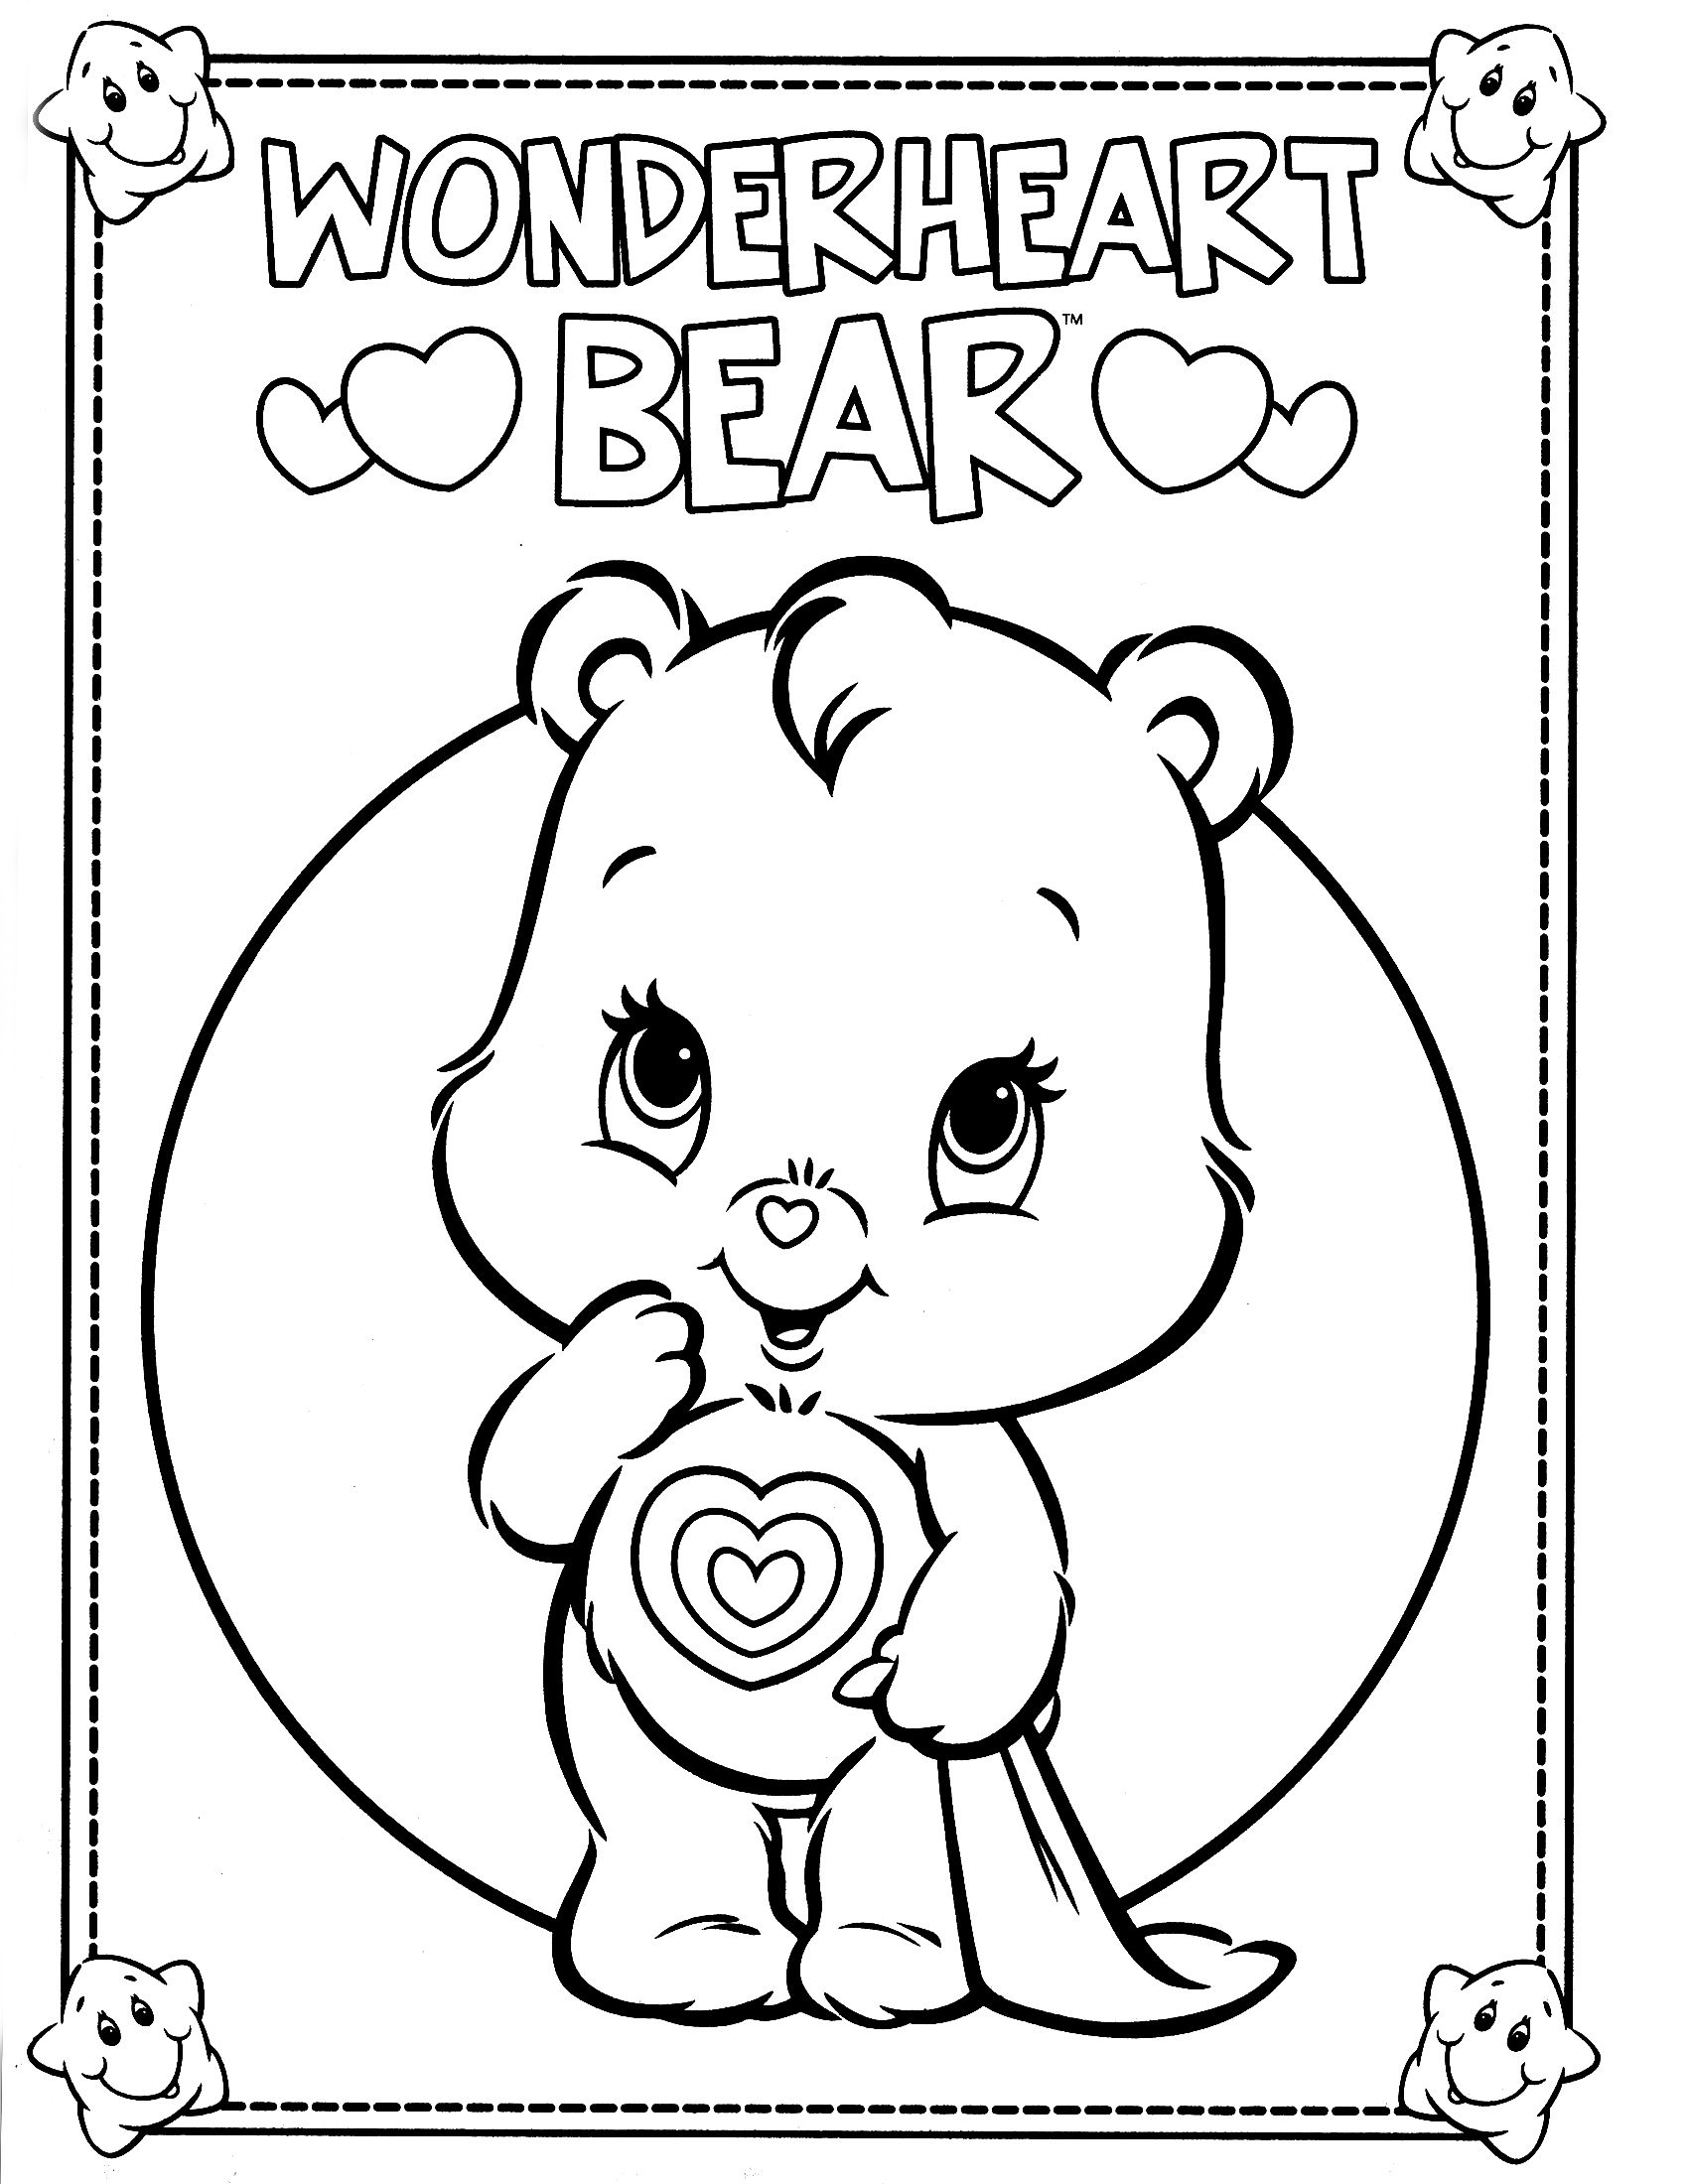 coloring pages for care bares - photo#34